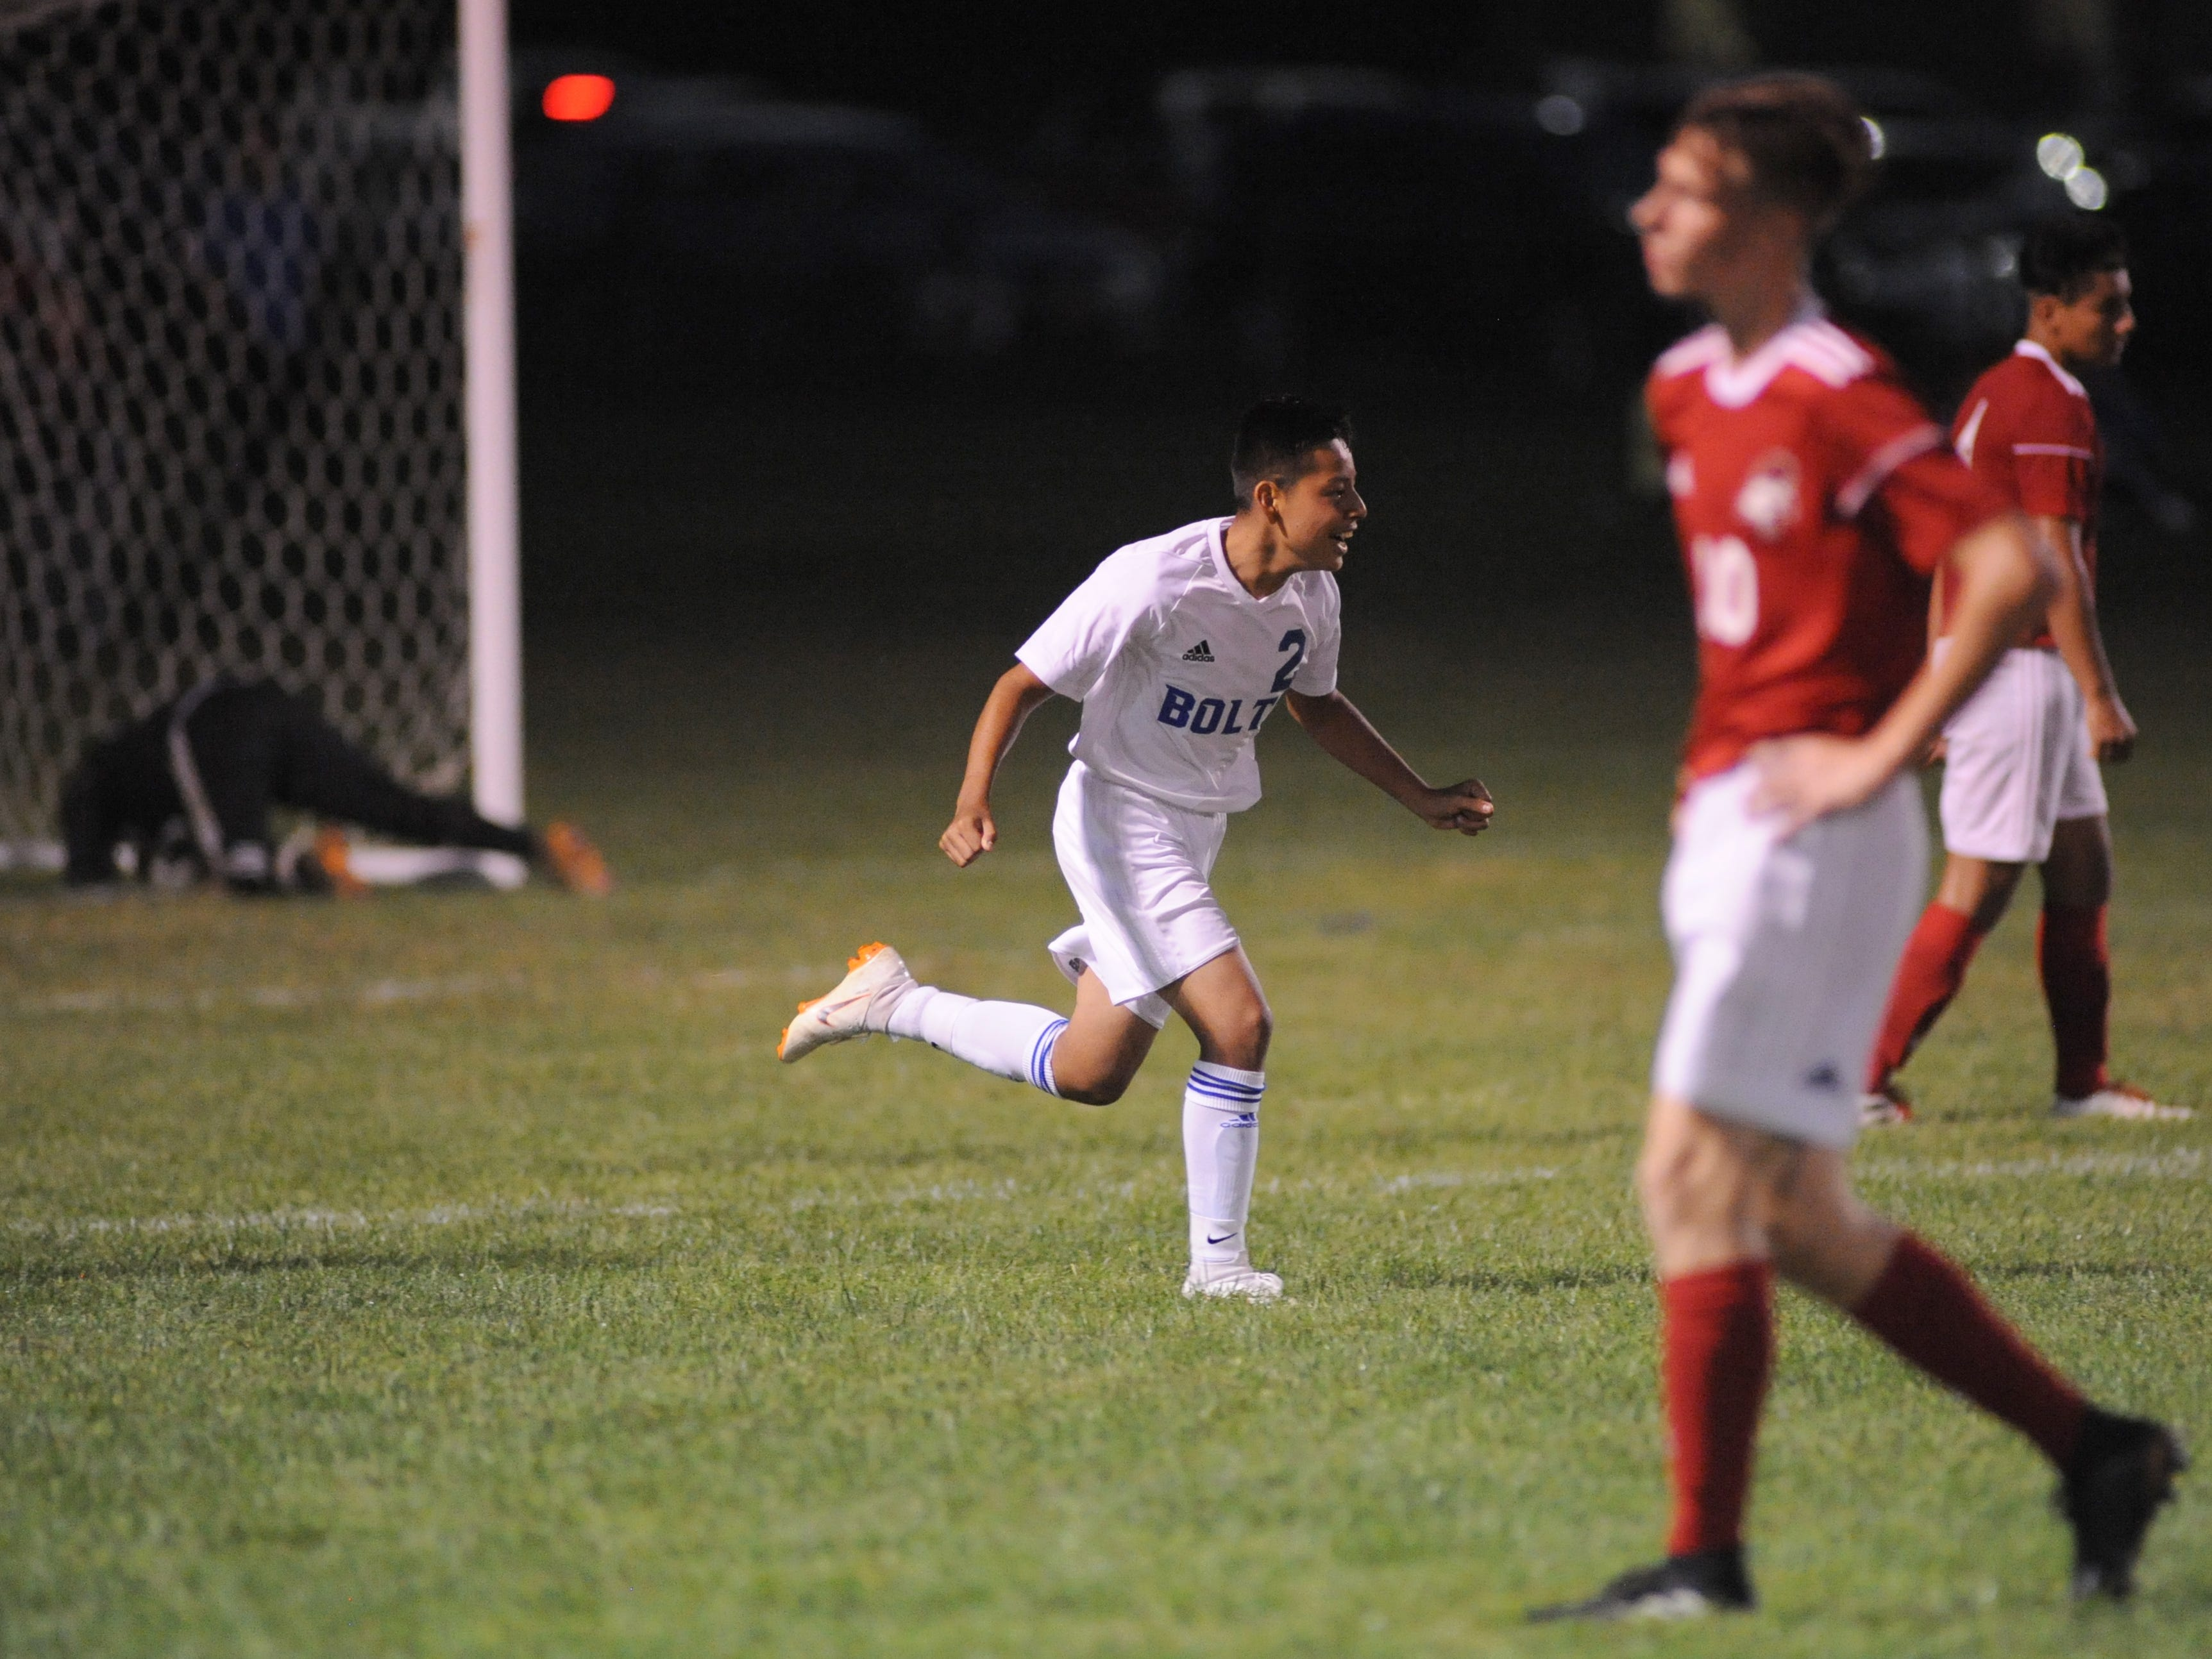 Millville's Steve Morales celebrates a thunderbolts goal scored during a boys soccer game against Vineland at Romano Sports Complex in Vineland, Monday, Sept. 17, 2018.